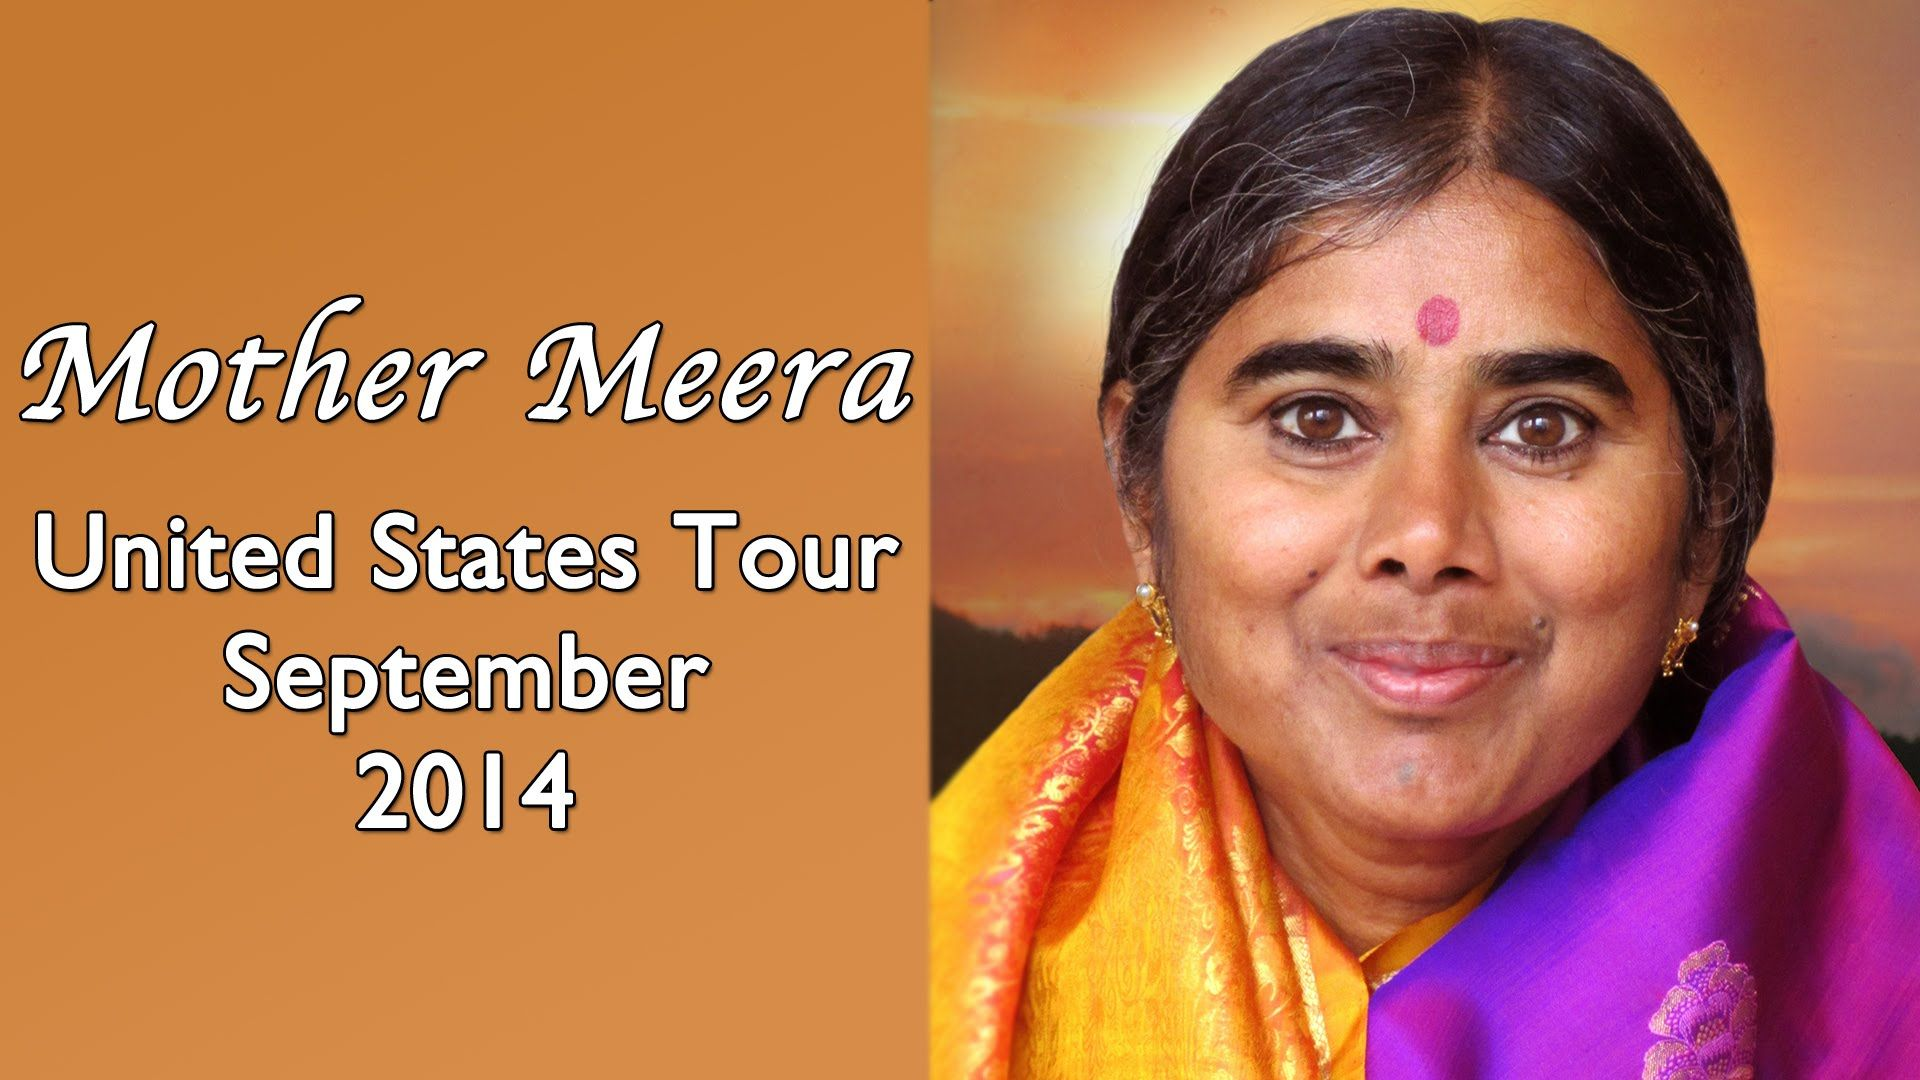 Mother Meera - Western United States Tour - September 2014